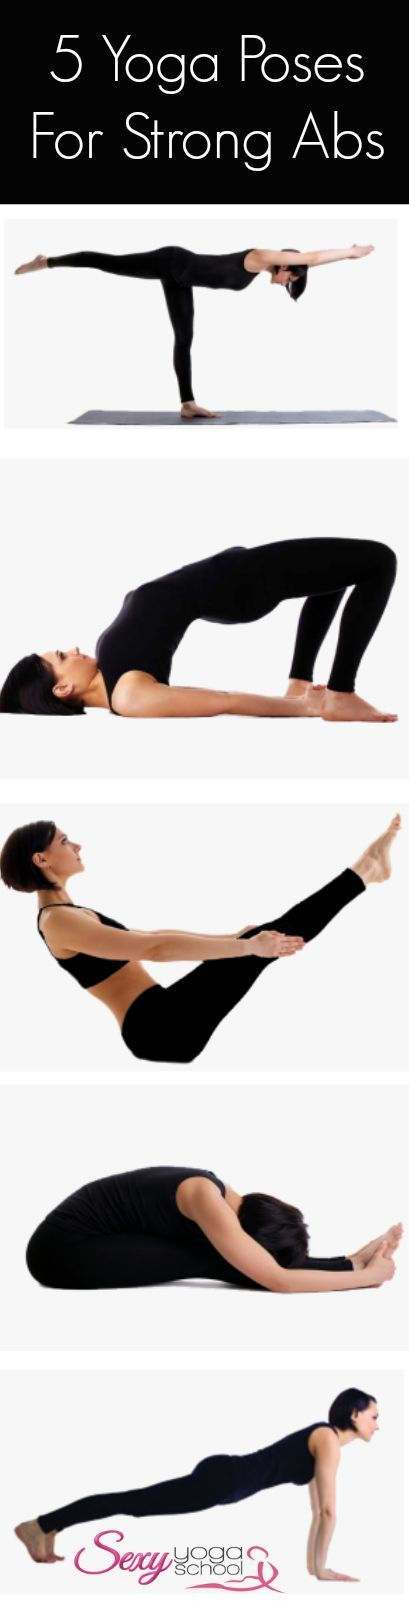 DownDog Yoga for Fun & Fitness: 5 Yoga Poses for Strong Abs. From the Downdog Diary Yoga Blog found exclusively at DownDog Boutique